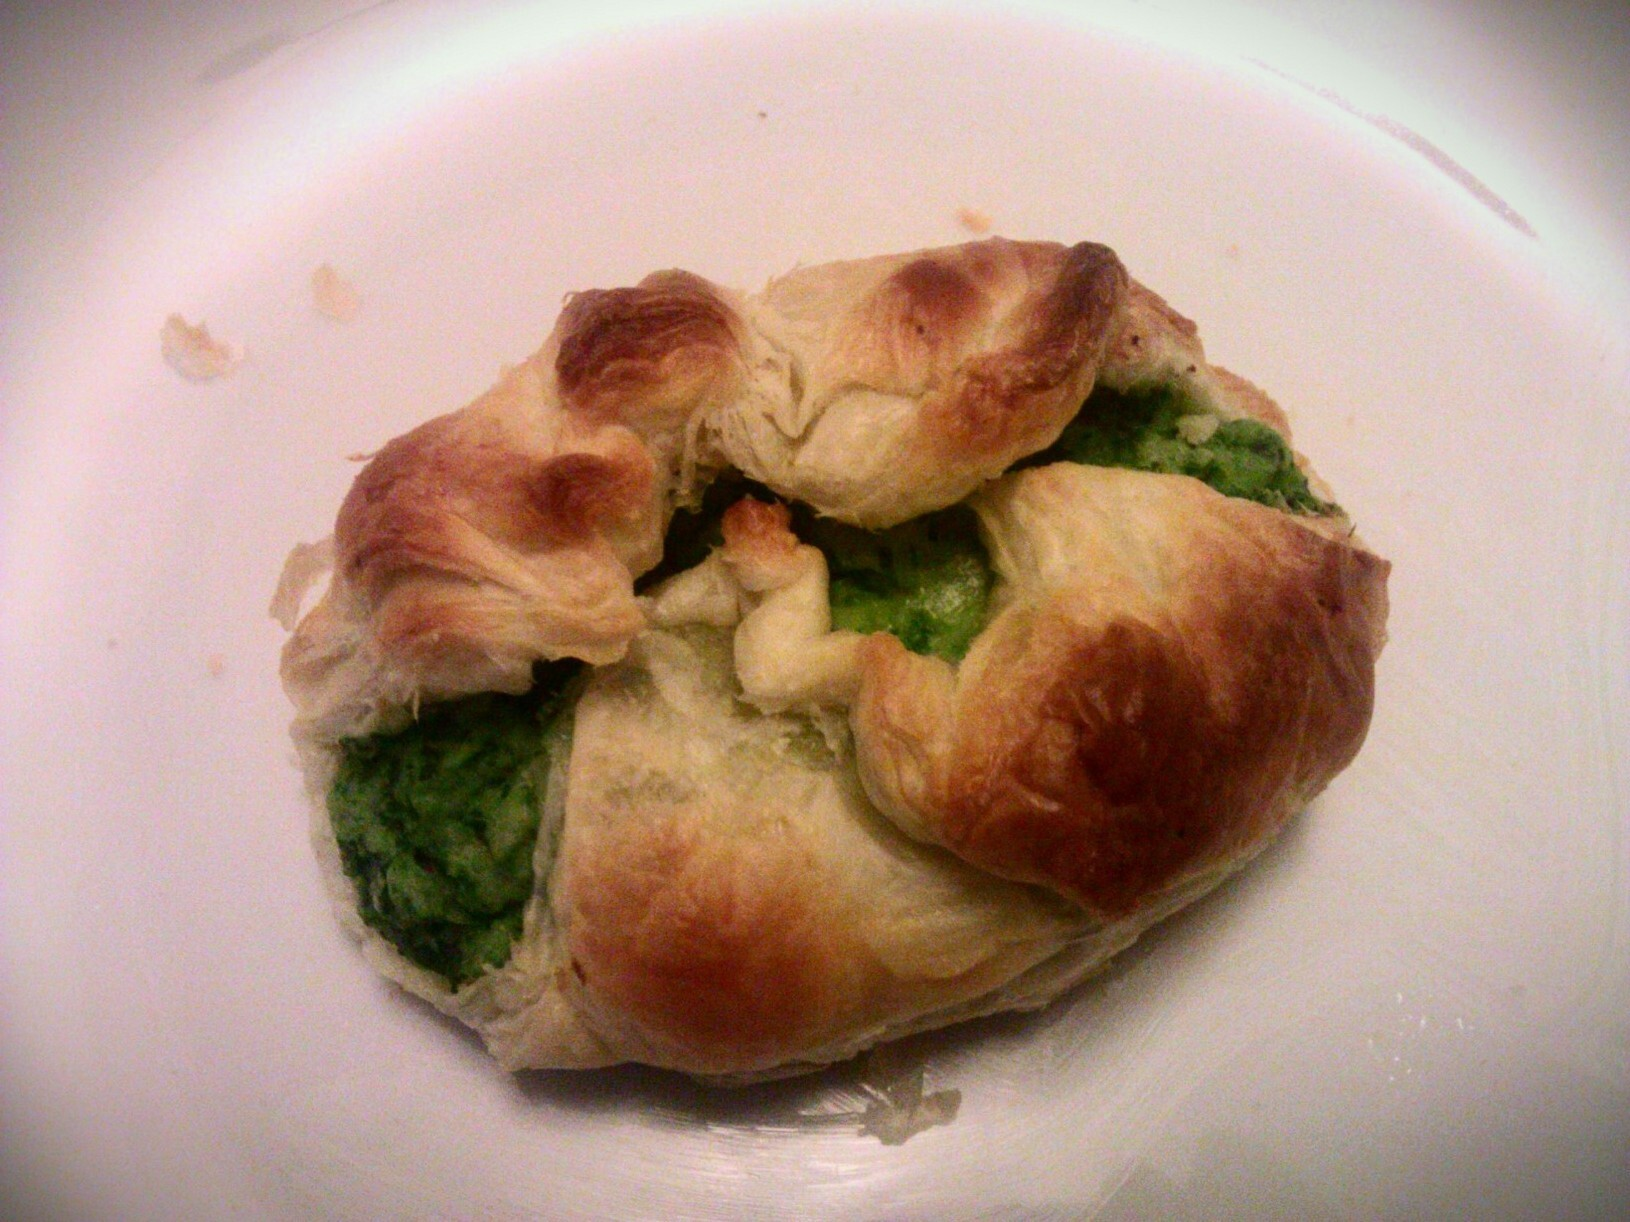 Spinach & ricotta knish